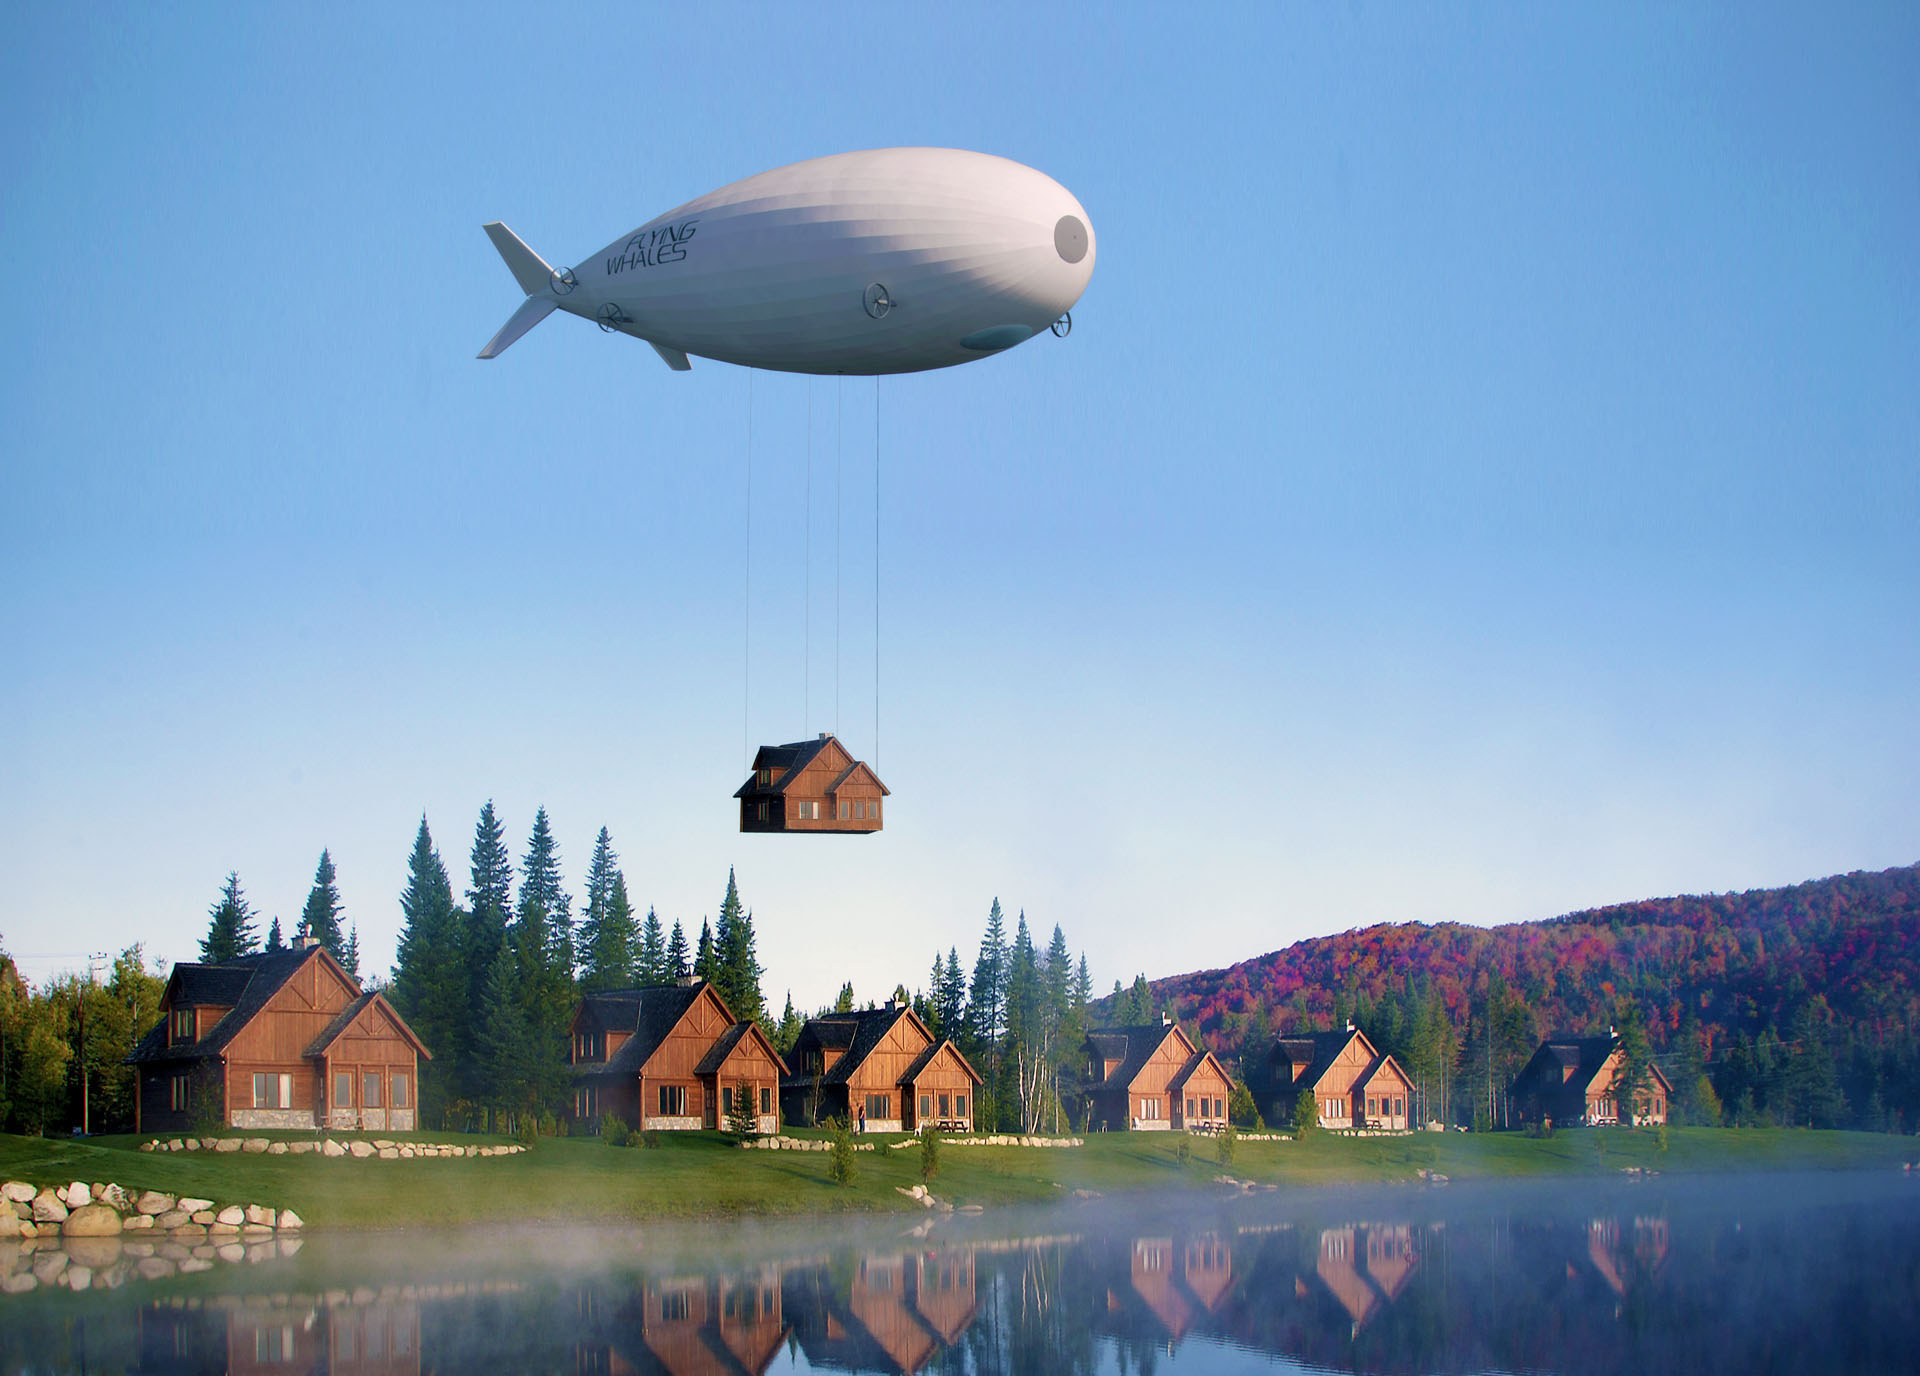 Skeleton Technologies and Flying Whales airship LCA60T carrying a house